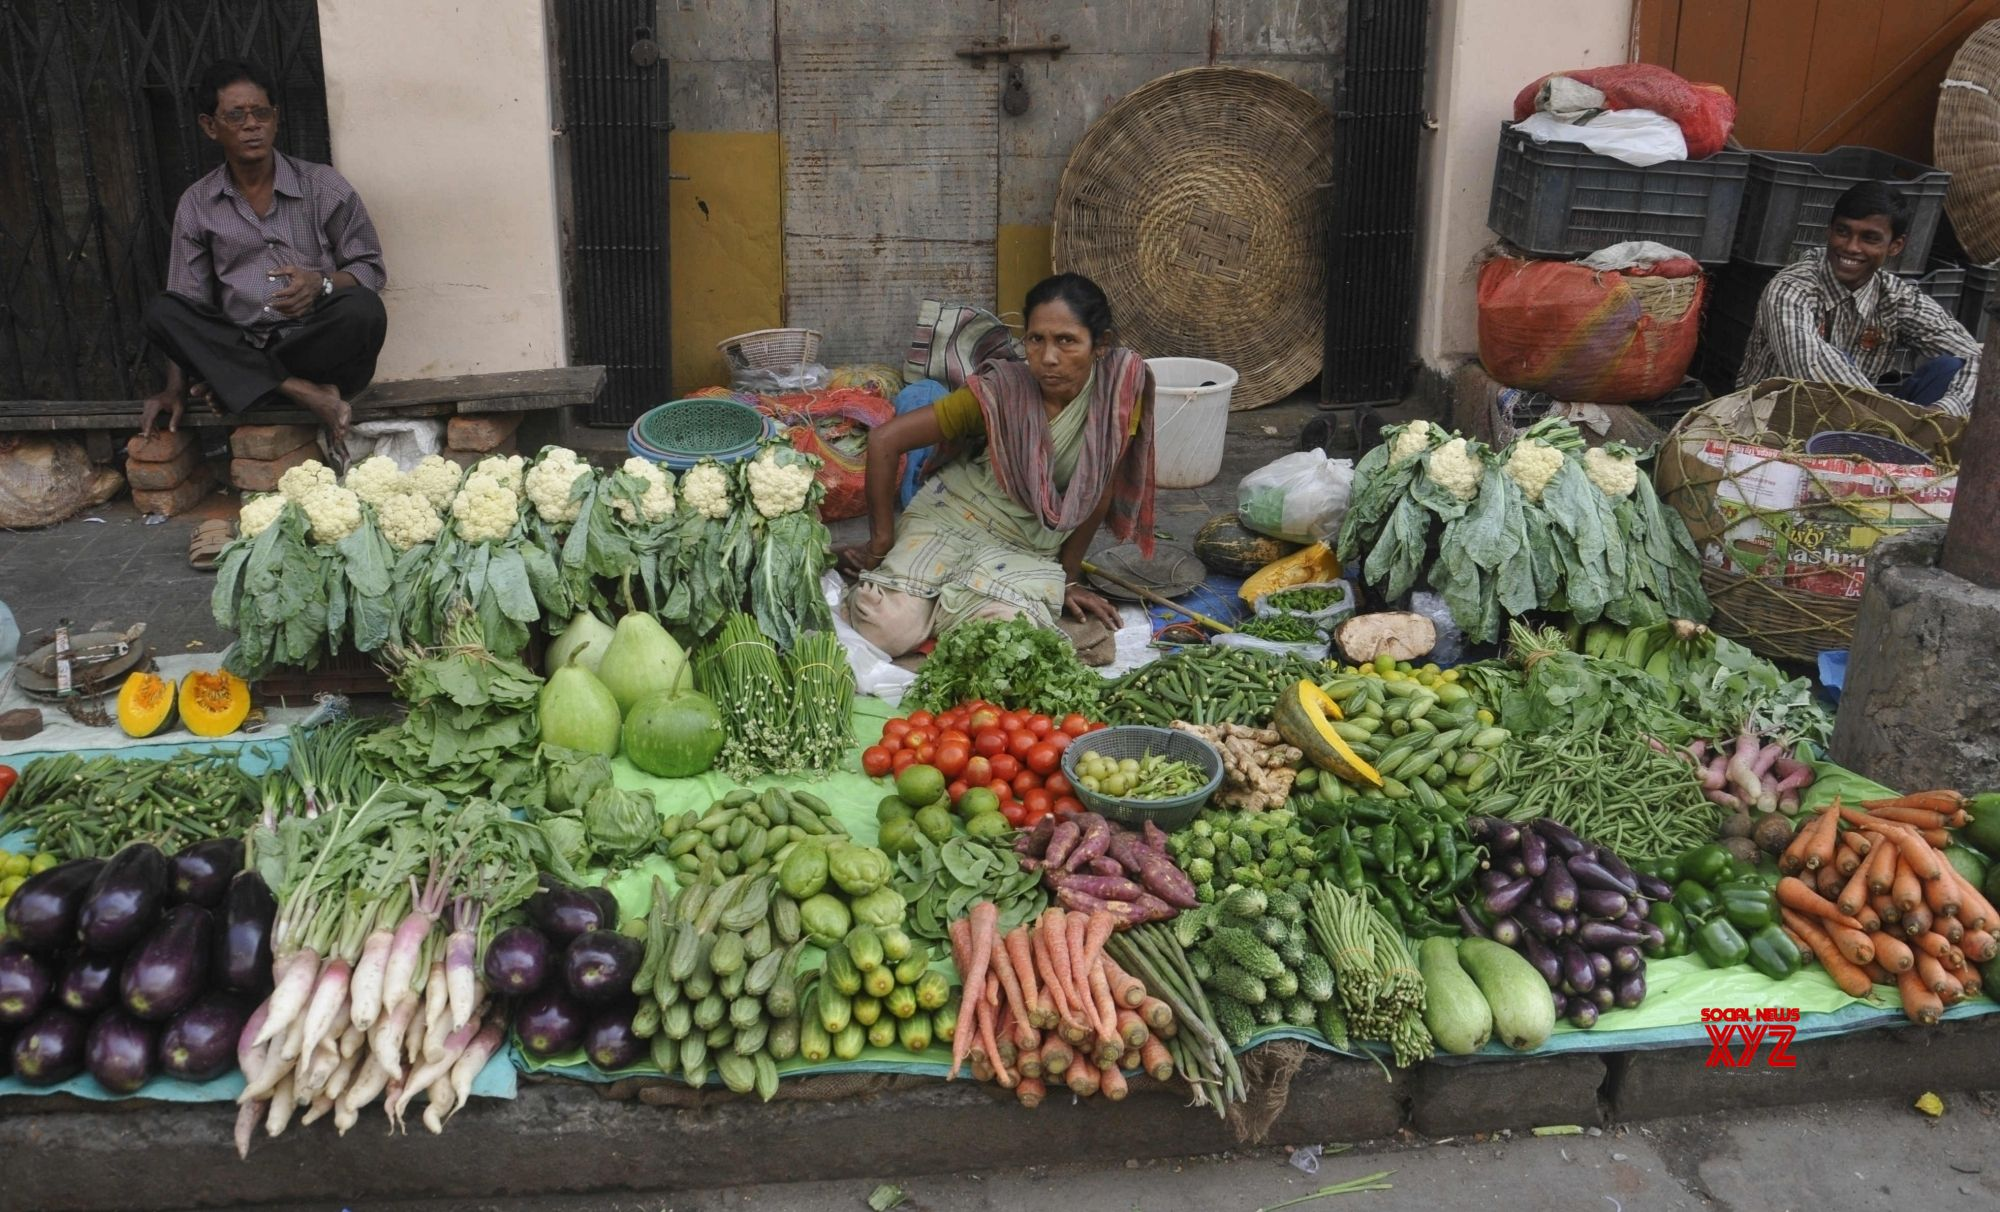 Market pundits surprised over sharp rise in inflation